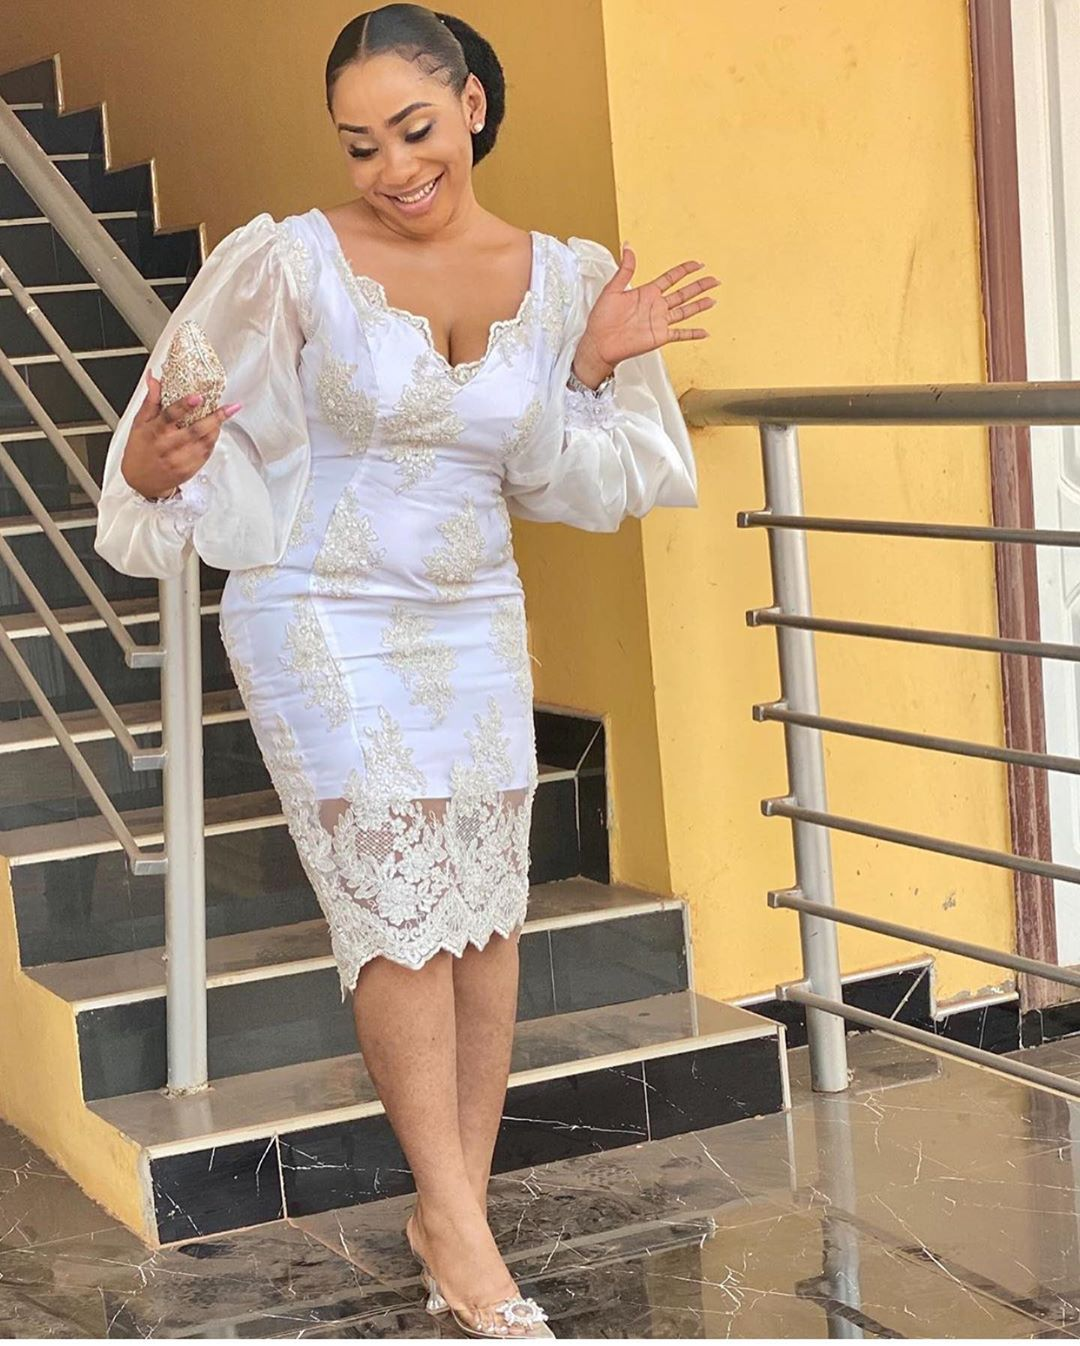 2020 SWEET ASO-EBI STYLES, FASHIONABLE STYLES FOR IMPORTANT EVENTS ... 1